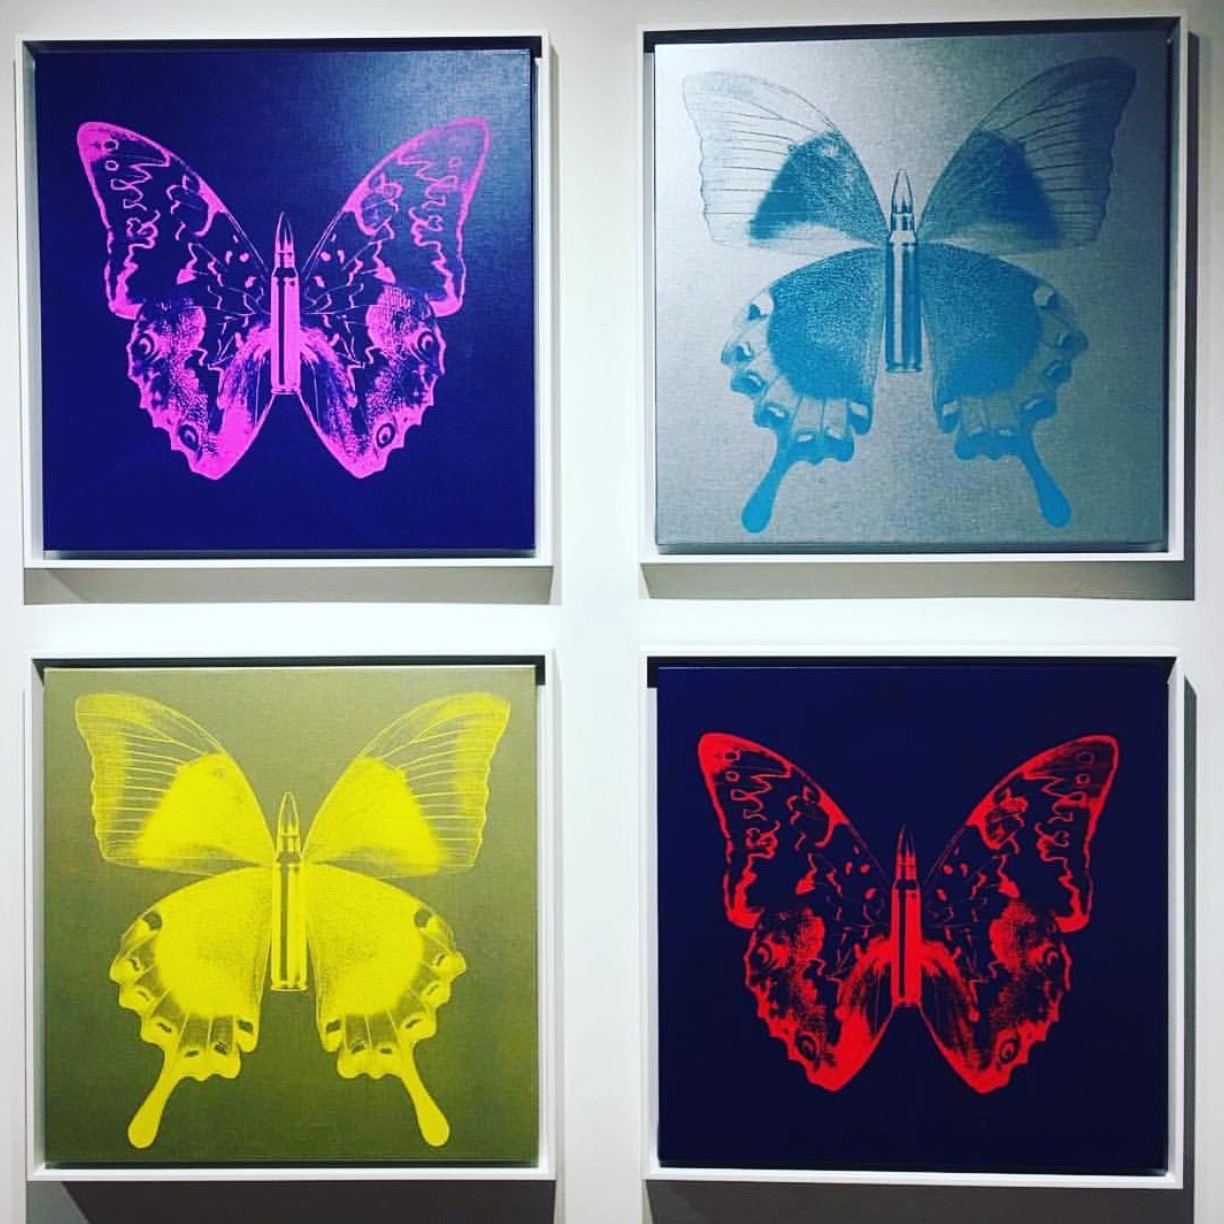 Butterflys , SilkScreen/Hand Painting/DiamondDust, Ed.: 5, 24 x 24 in. each, 2016.